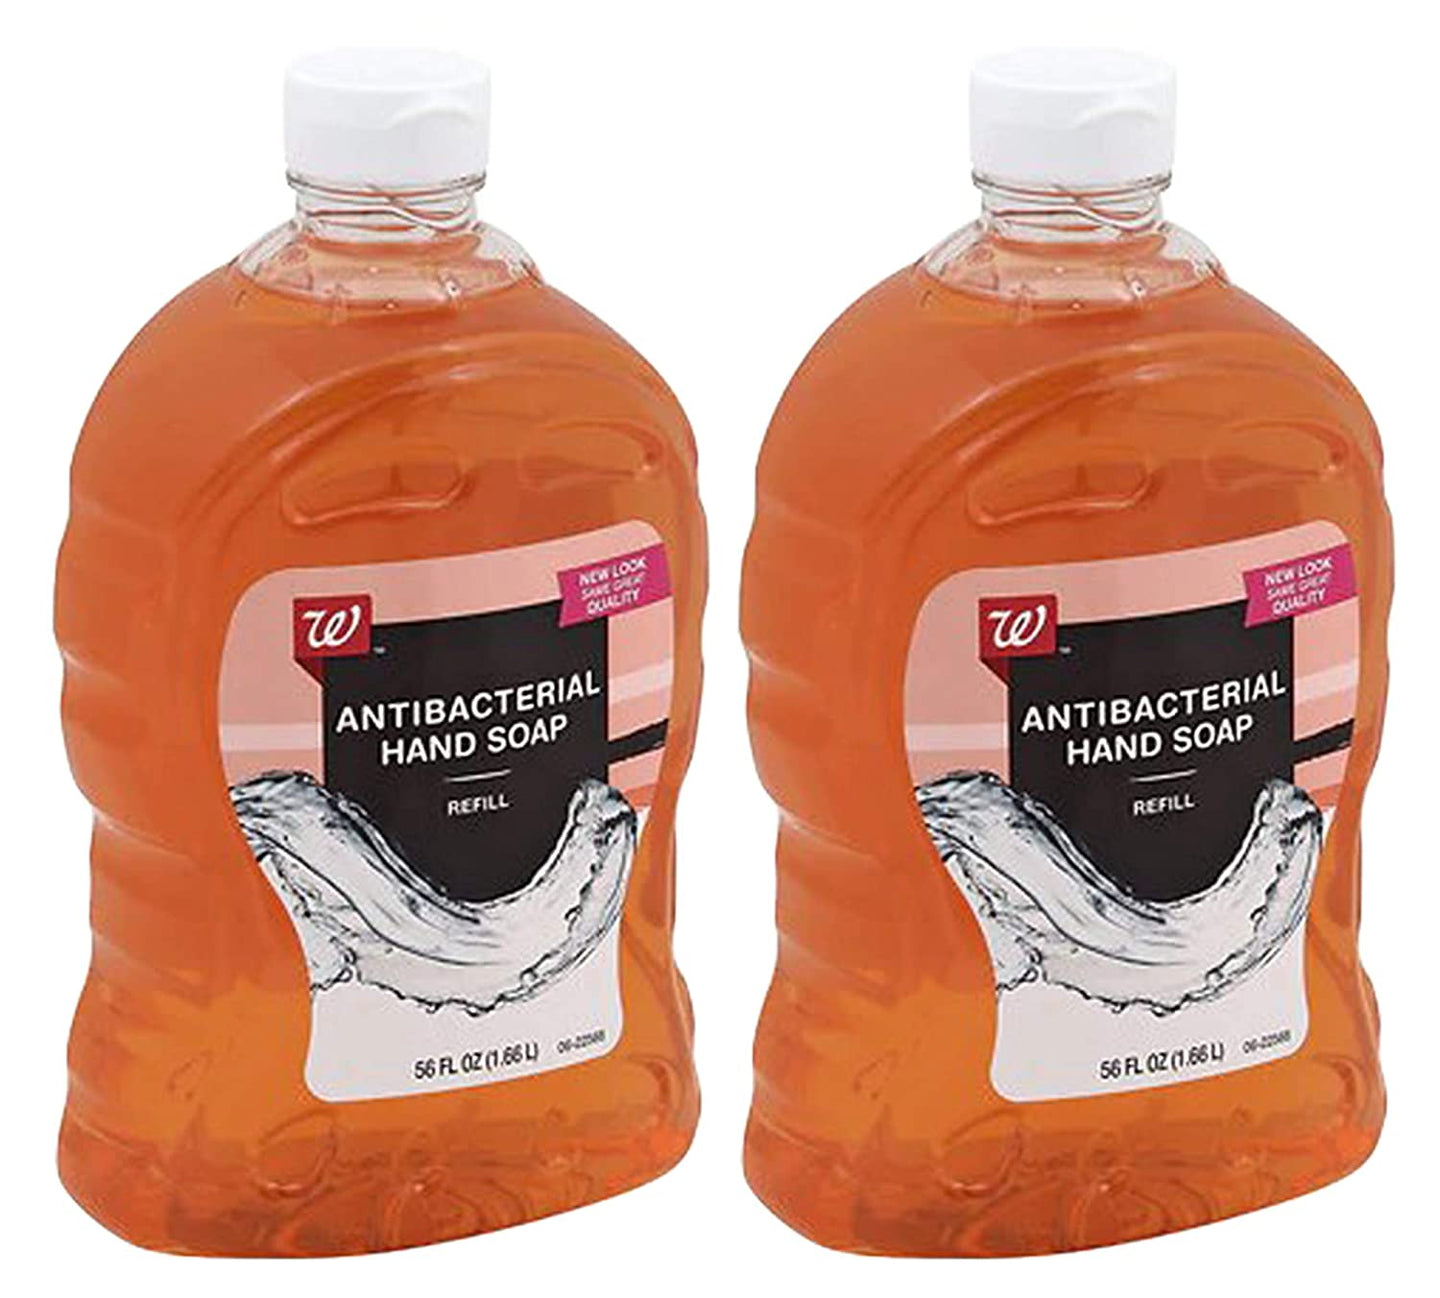 Walgreens Antibacterial Hand Soap Refill, 56 Ounces (Pack of 2)